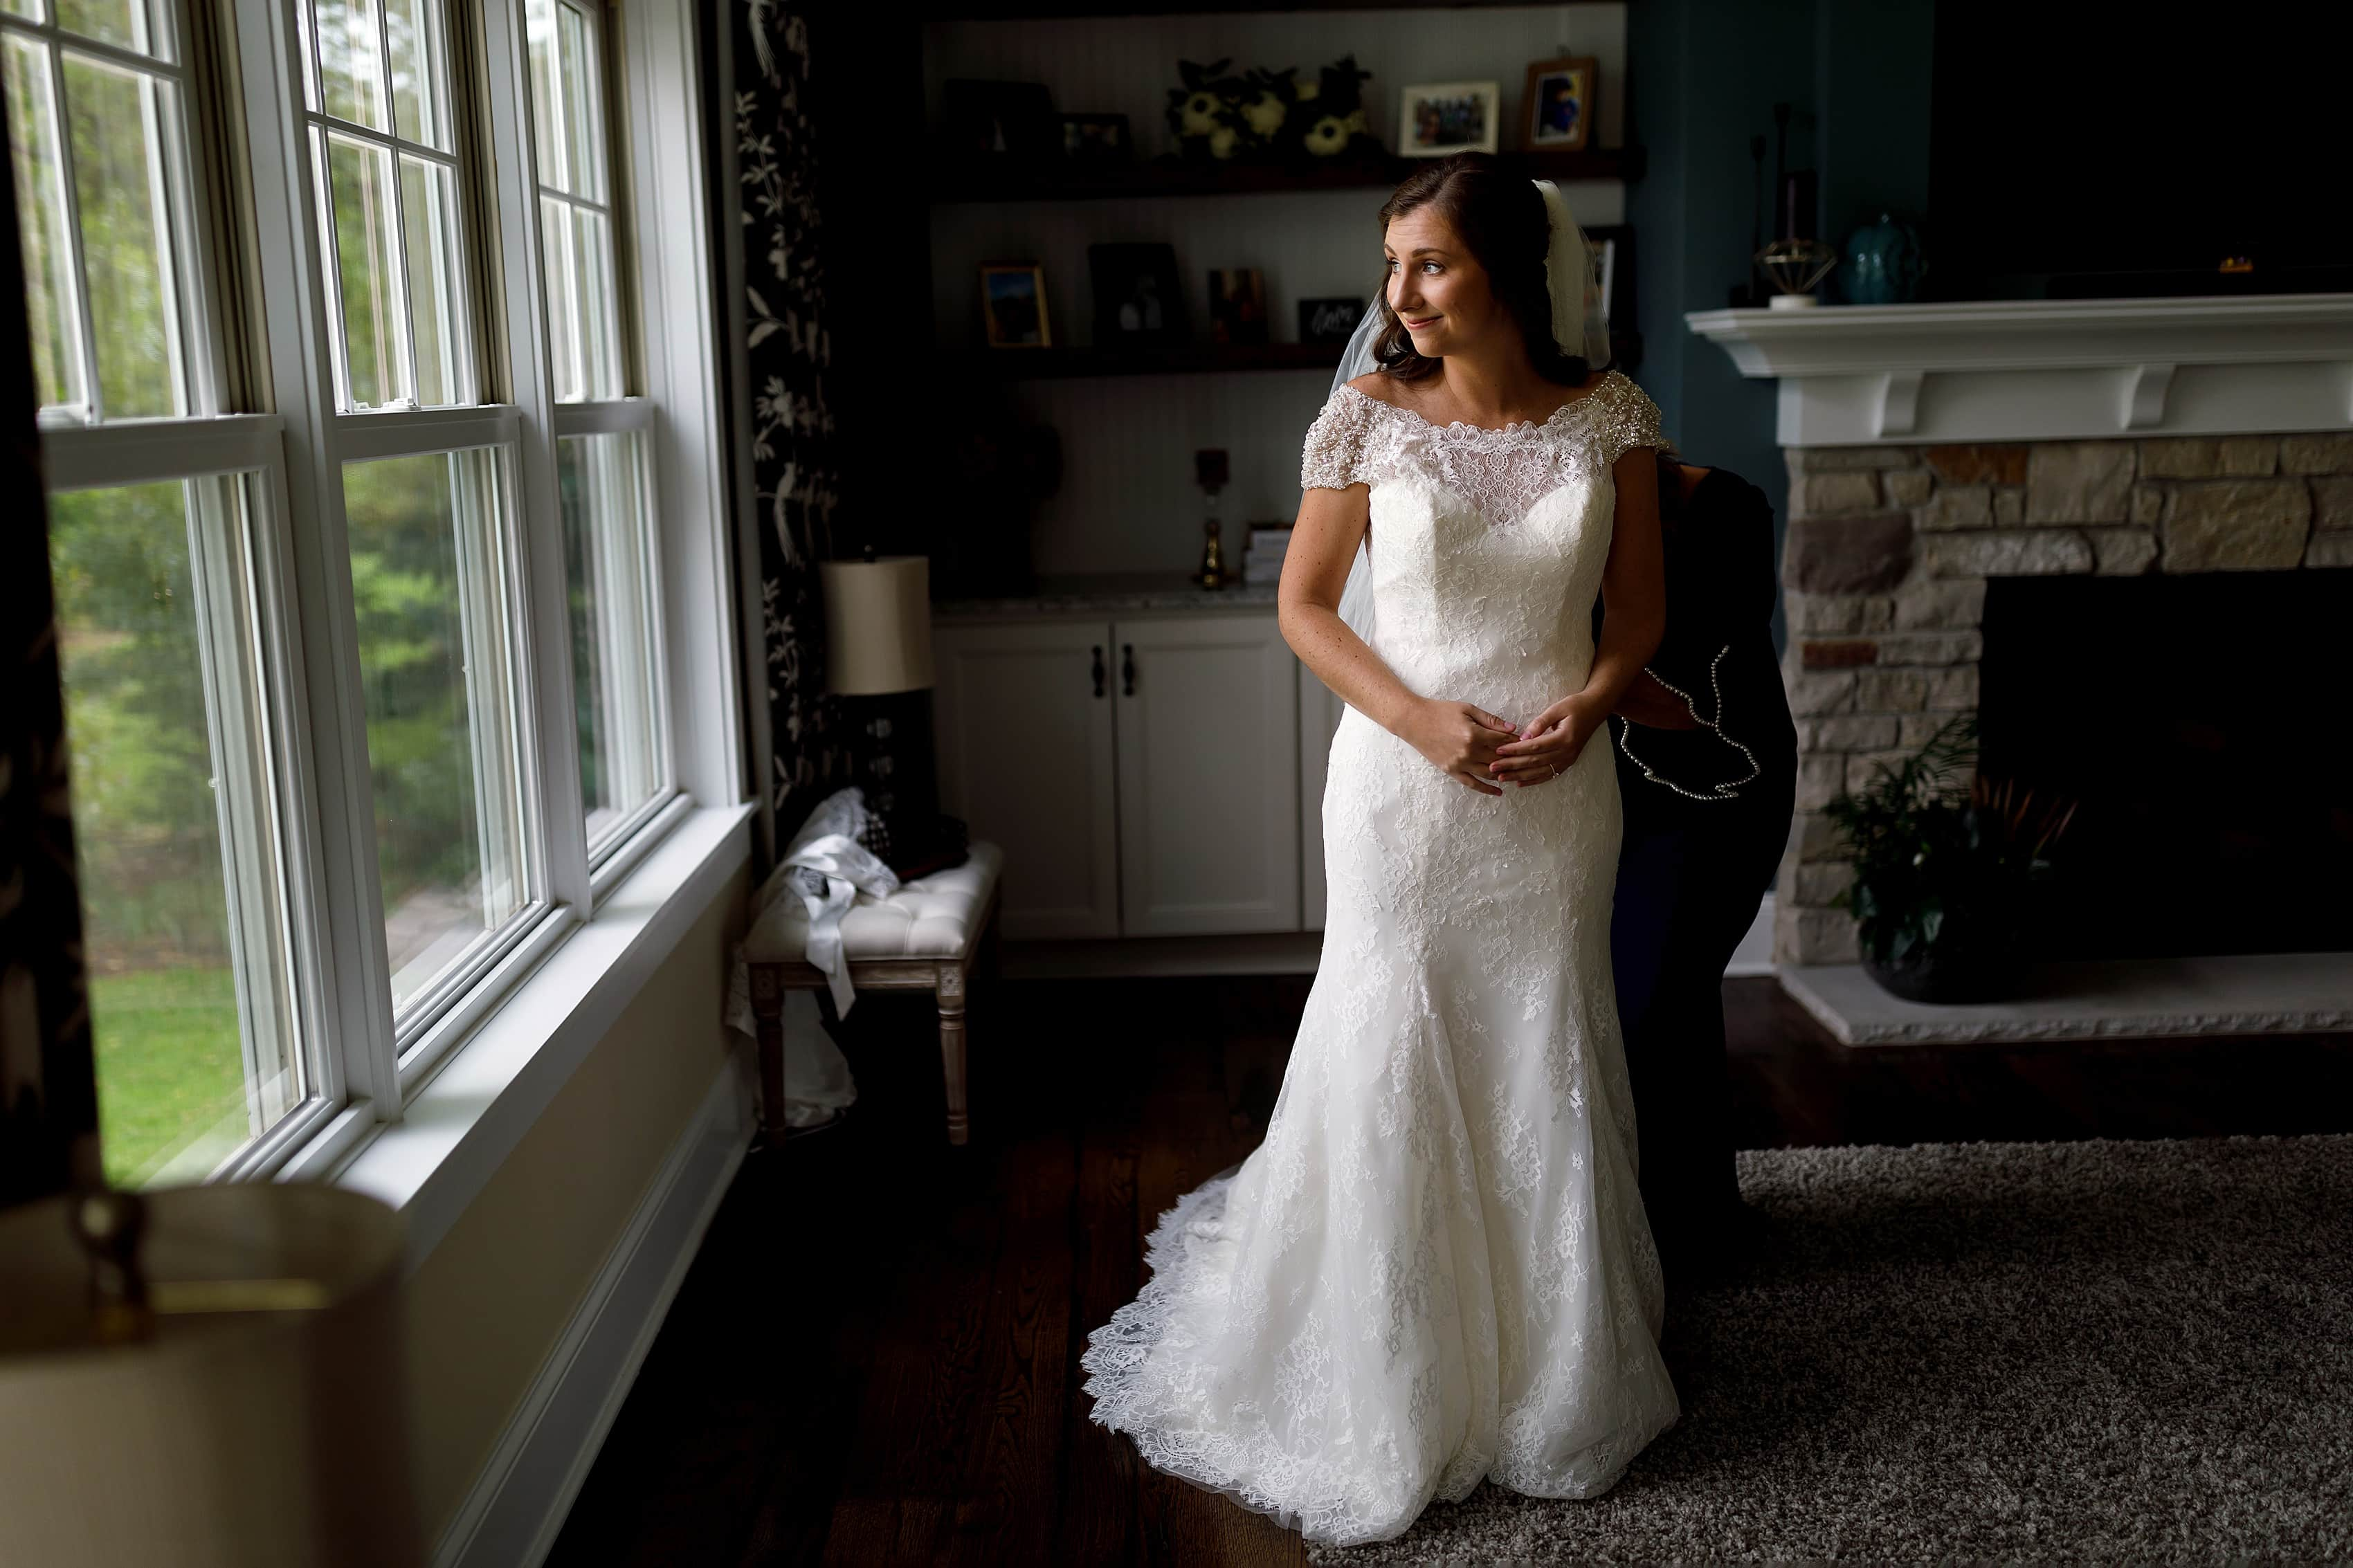 Bride gets into dress with her mom while getting ready for wedding